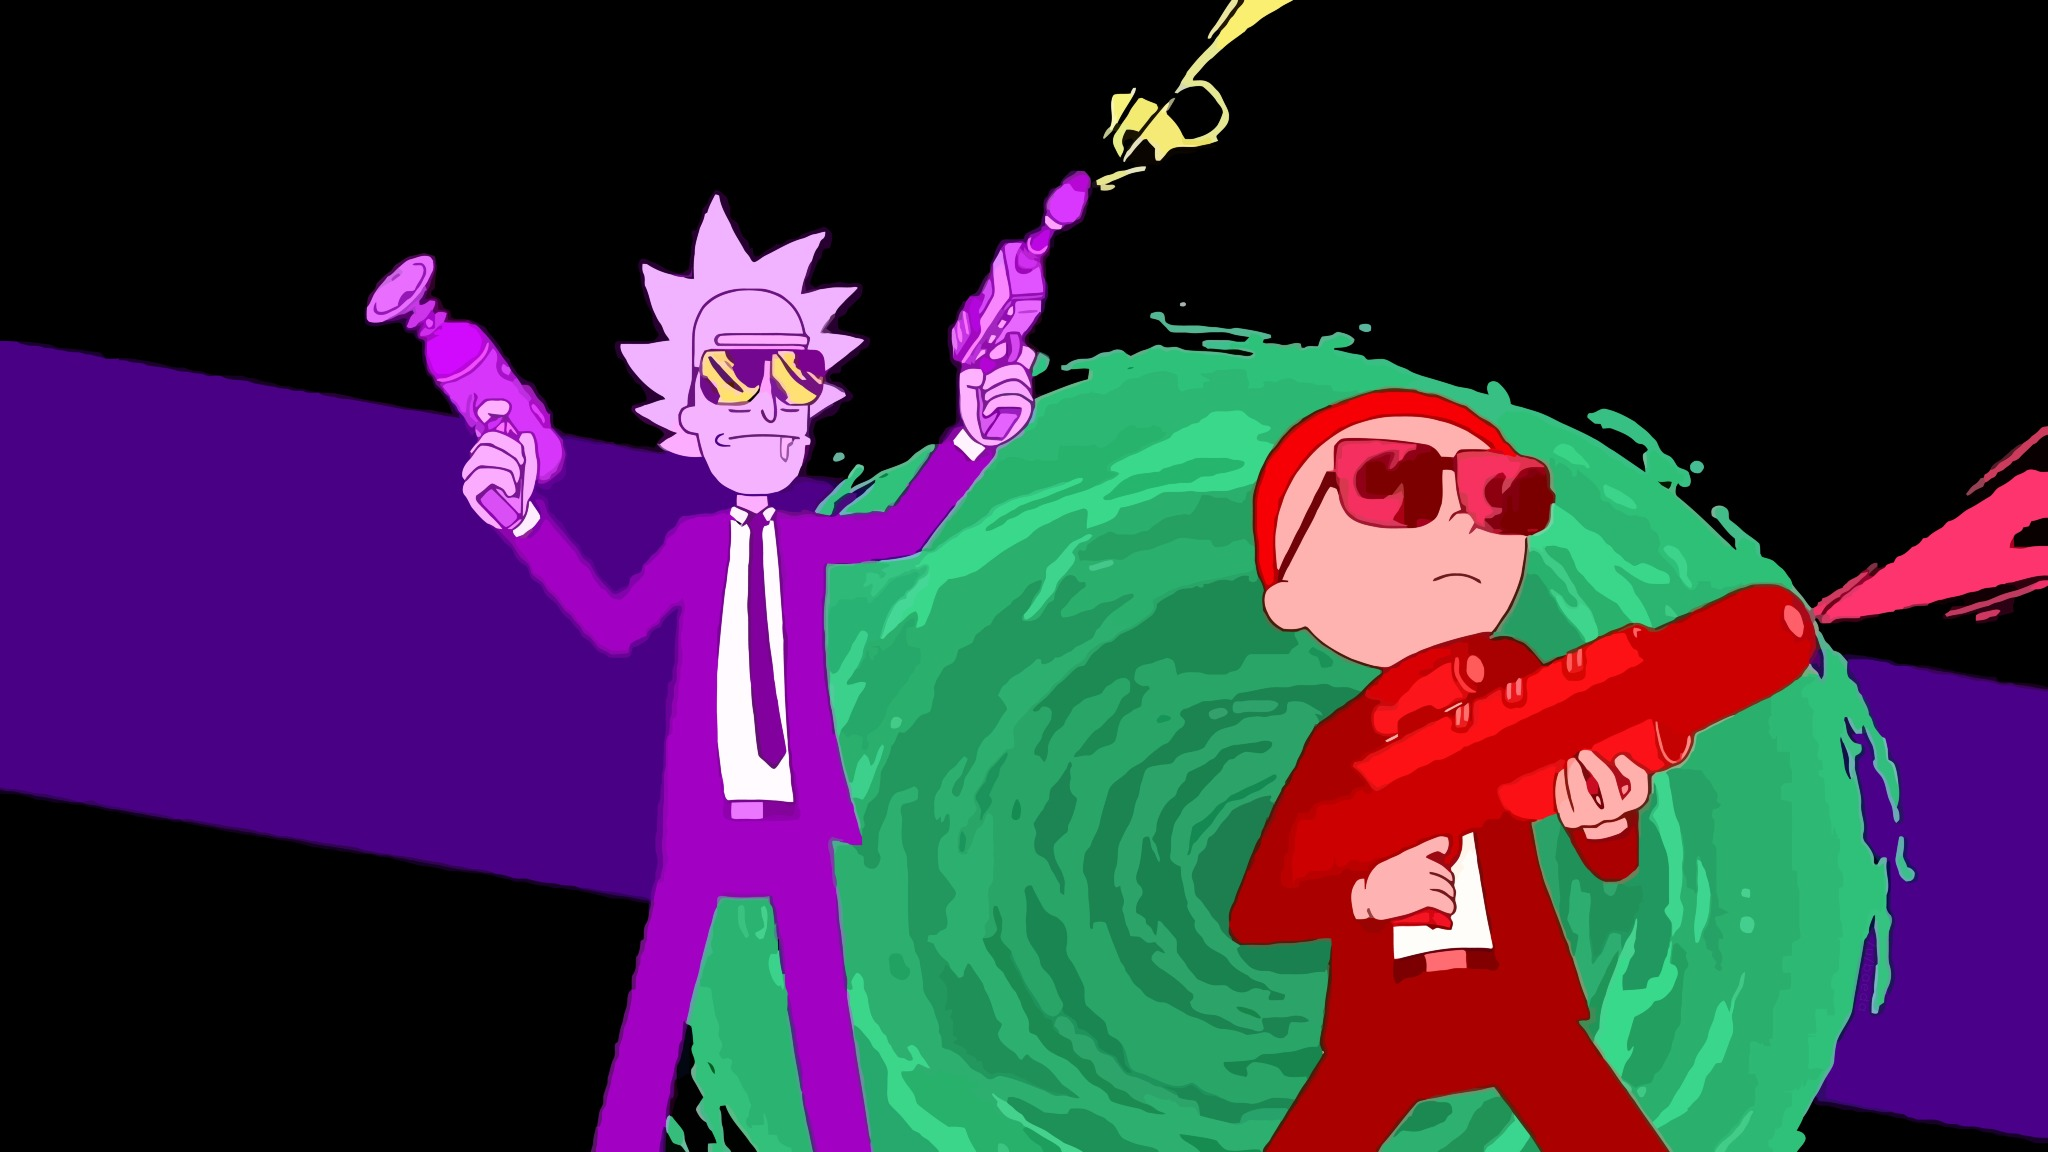 download rick and morty run the jewels art 840x1336 resolution, hd